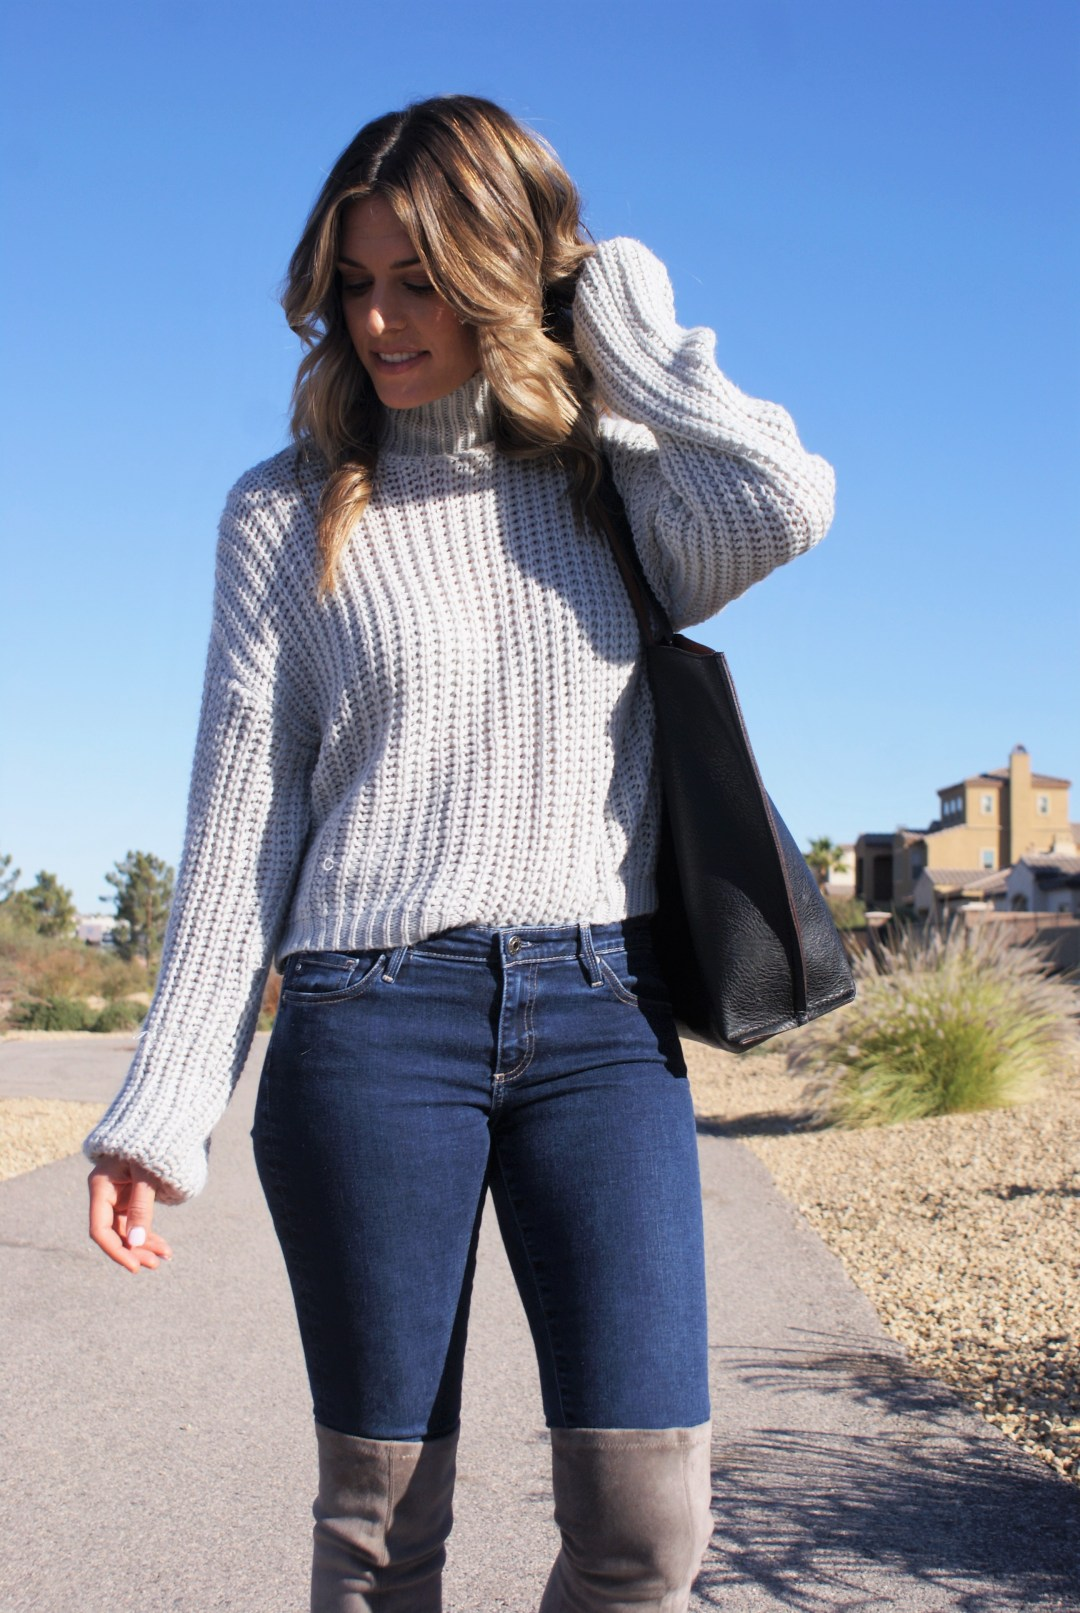 The Comfy Trendy Sweaters I'm Loving Under $50